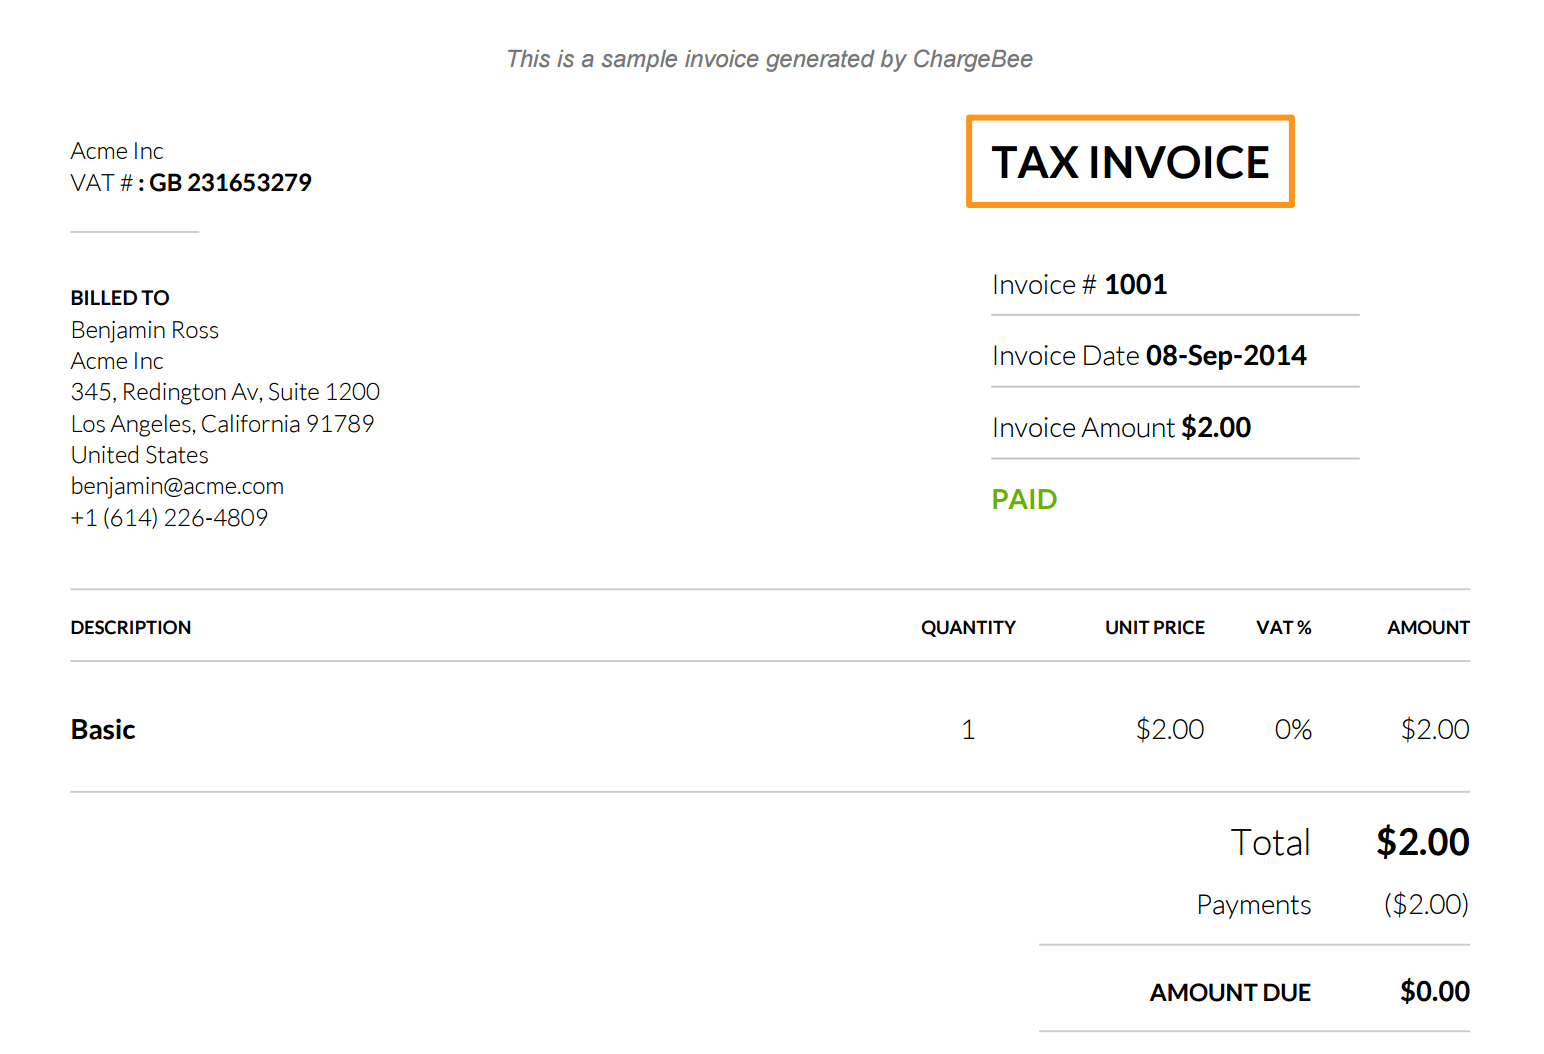 Opportunitycaus  Prepossessing Customizing Invoice Title With Exquisite Back To Timeline With Beauteous Free Online Invoice Template Also What Is Paypal Invoice In Addition Invoices Free And What Is An Invoice Paypal As Well As Paypal Invoice Scams Additionally Invoicing App From Chargebeecom With Opportunitycaus  Exquisite Customizing Invoice Title With Beauteous Back To Timeline And Prepossessing Free Online Invoice Template Also What Is Paypal Invoice In Addition Invoices Free From Chargebeecom